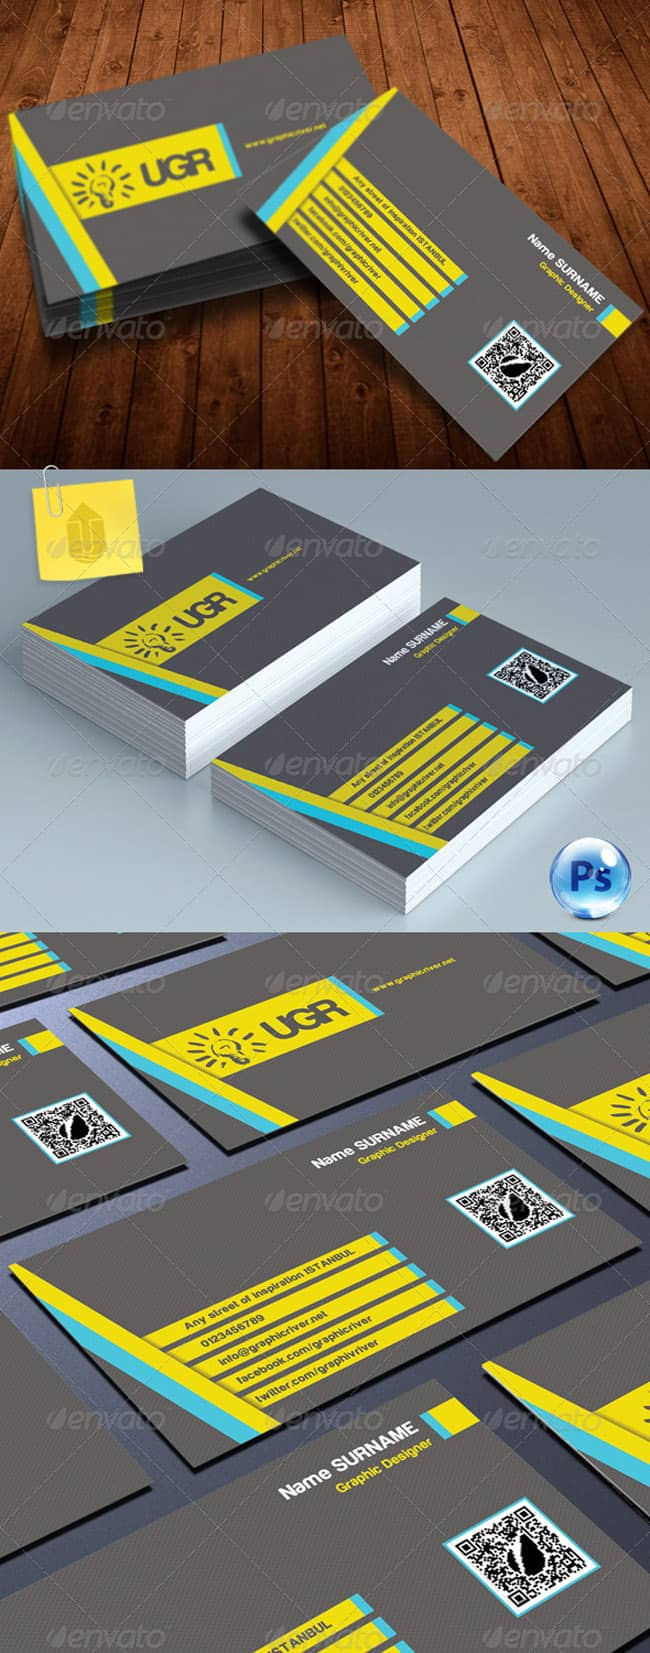 Creative Business Card 234